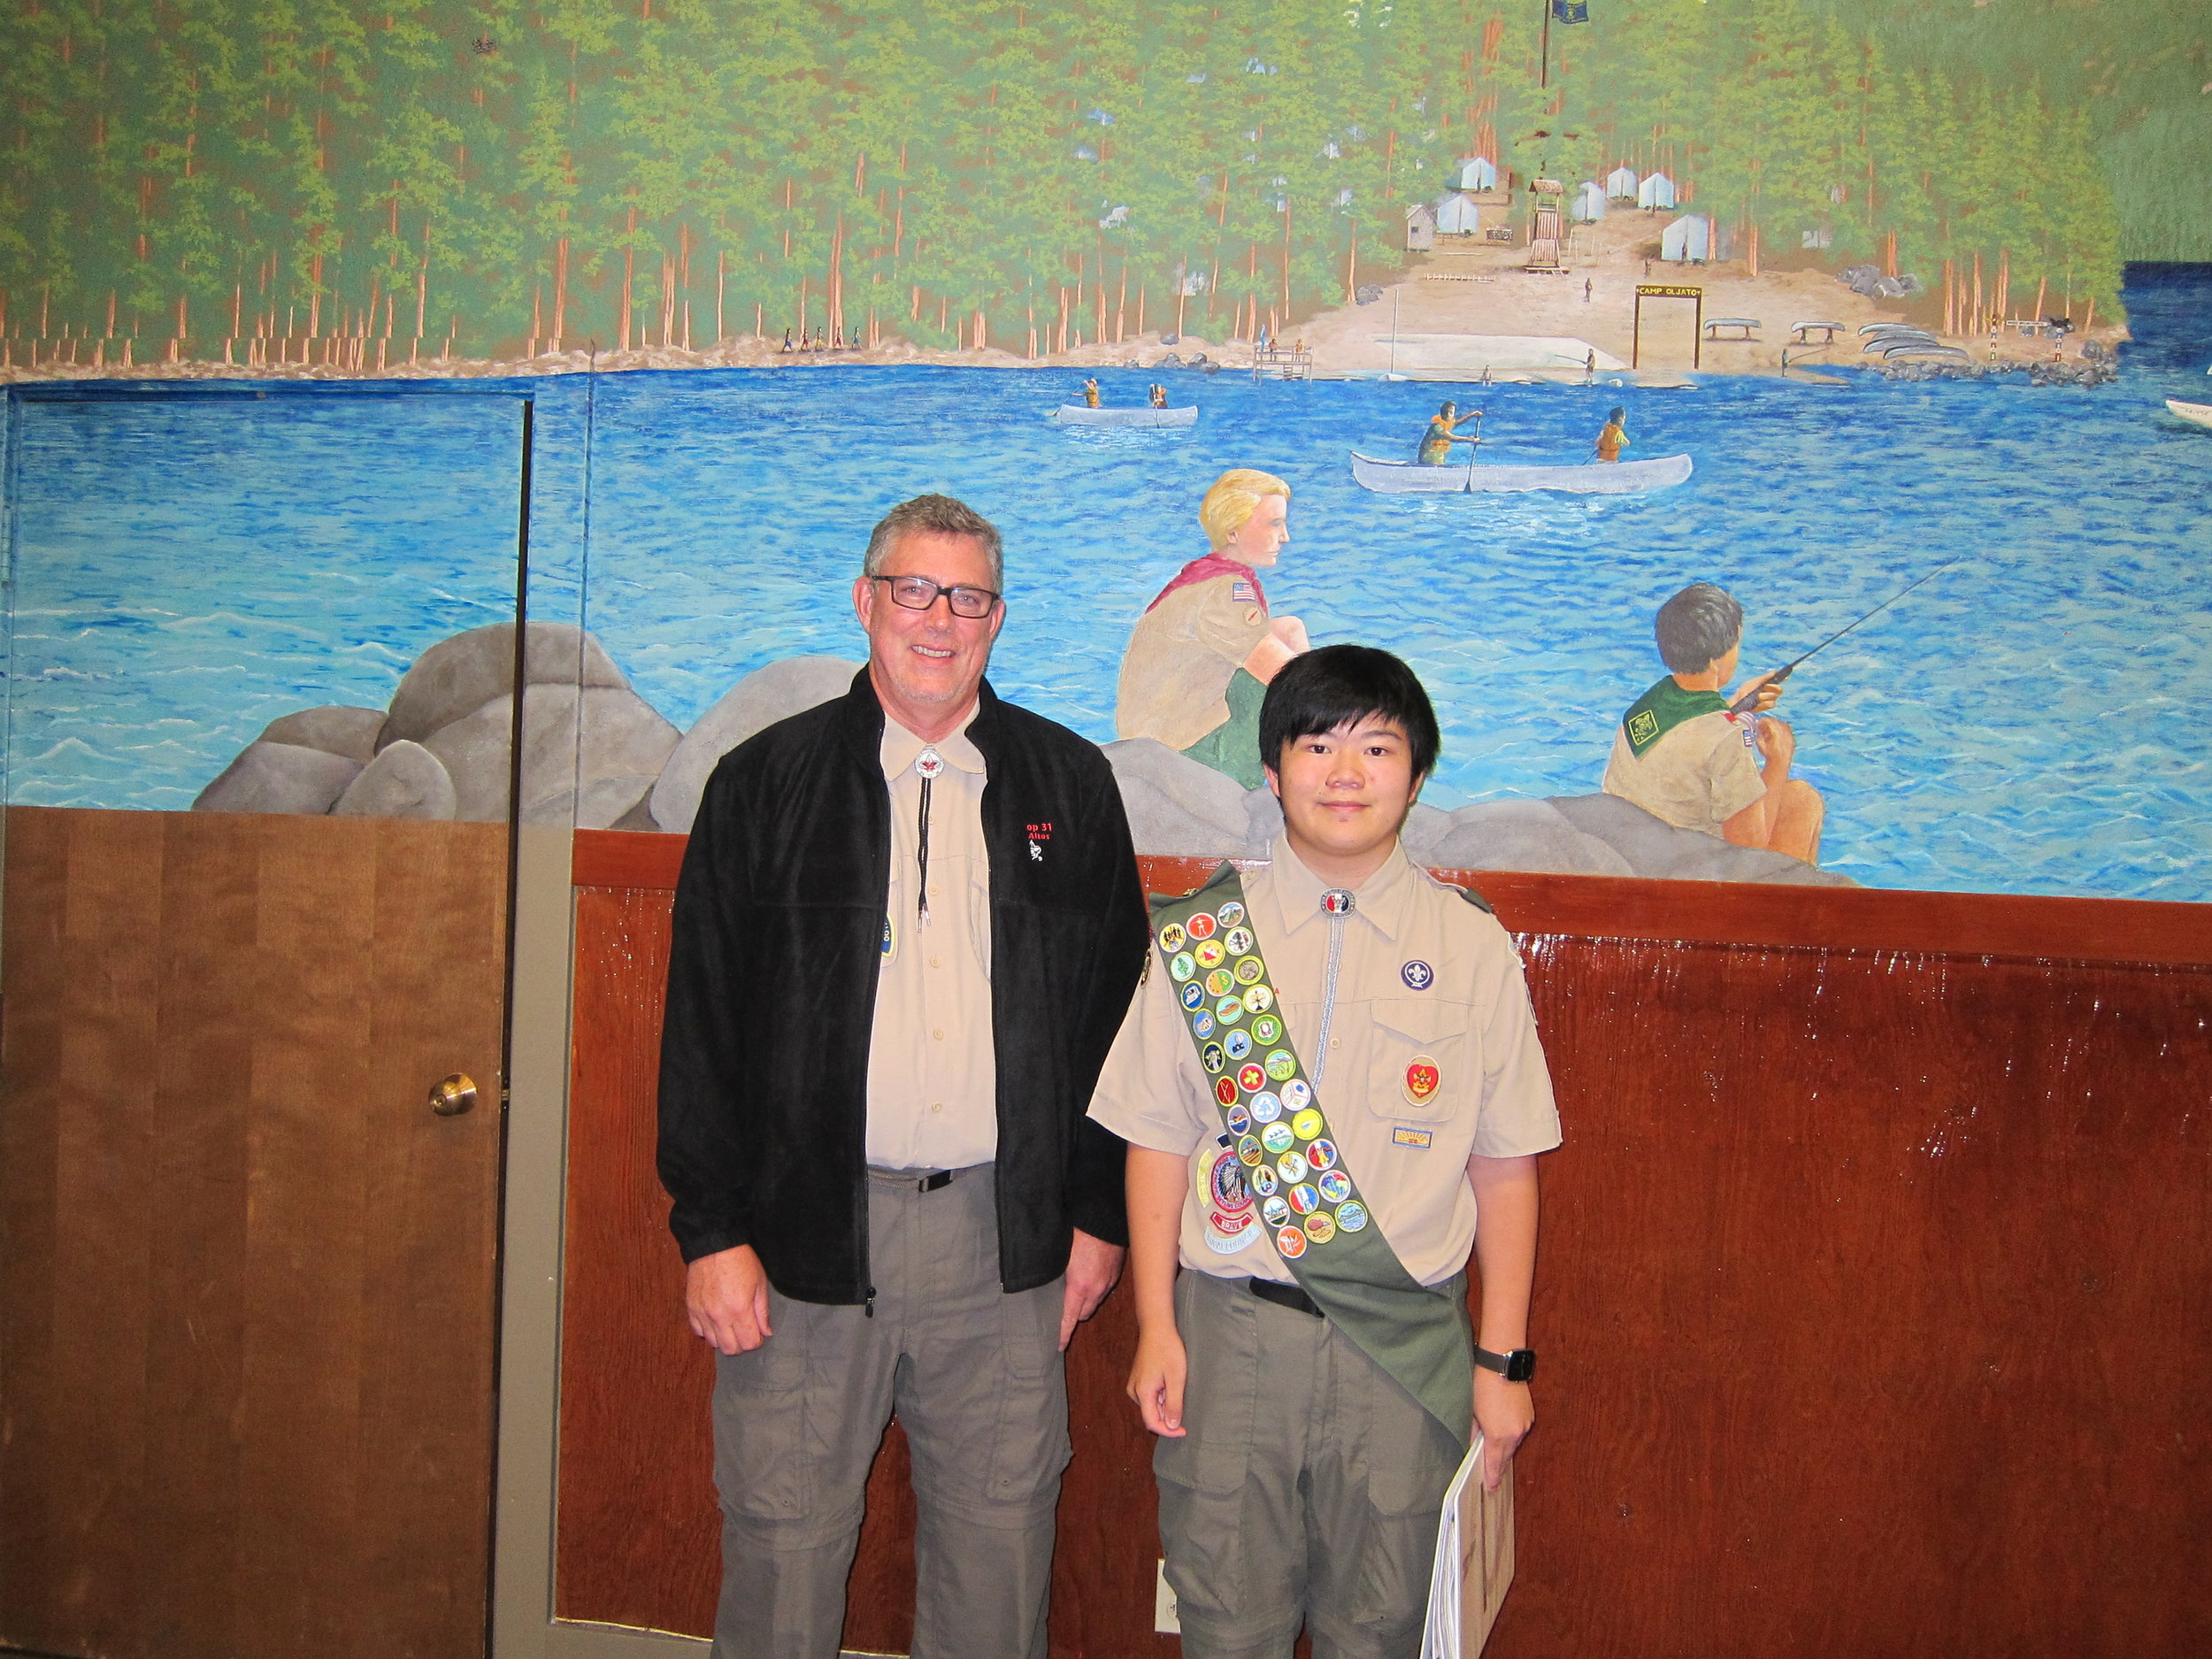 Jeff Marlett, Troop 31 Scoutmaster (left) and Eagle Scout Terence Lee (right) attending Eagle Board on August 25, 2016